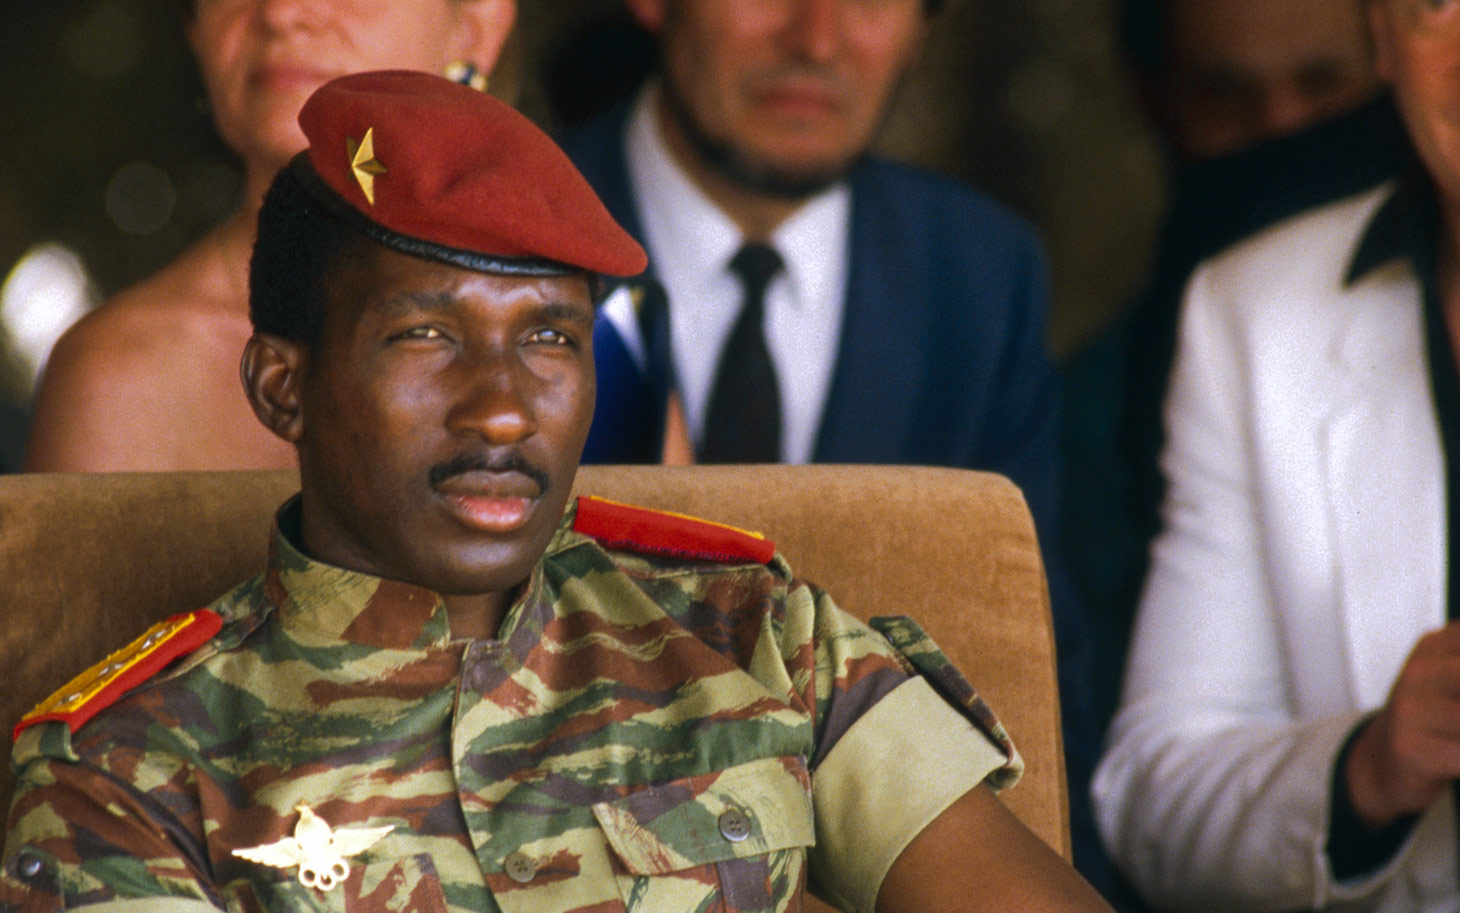 Affaire Thomas Sankara: une avancée significative.